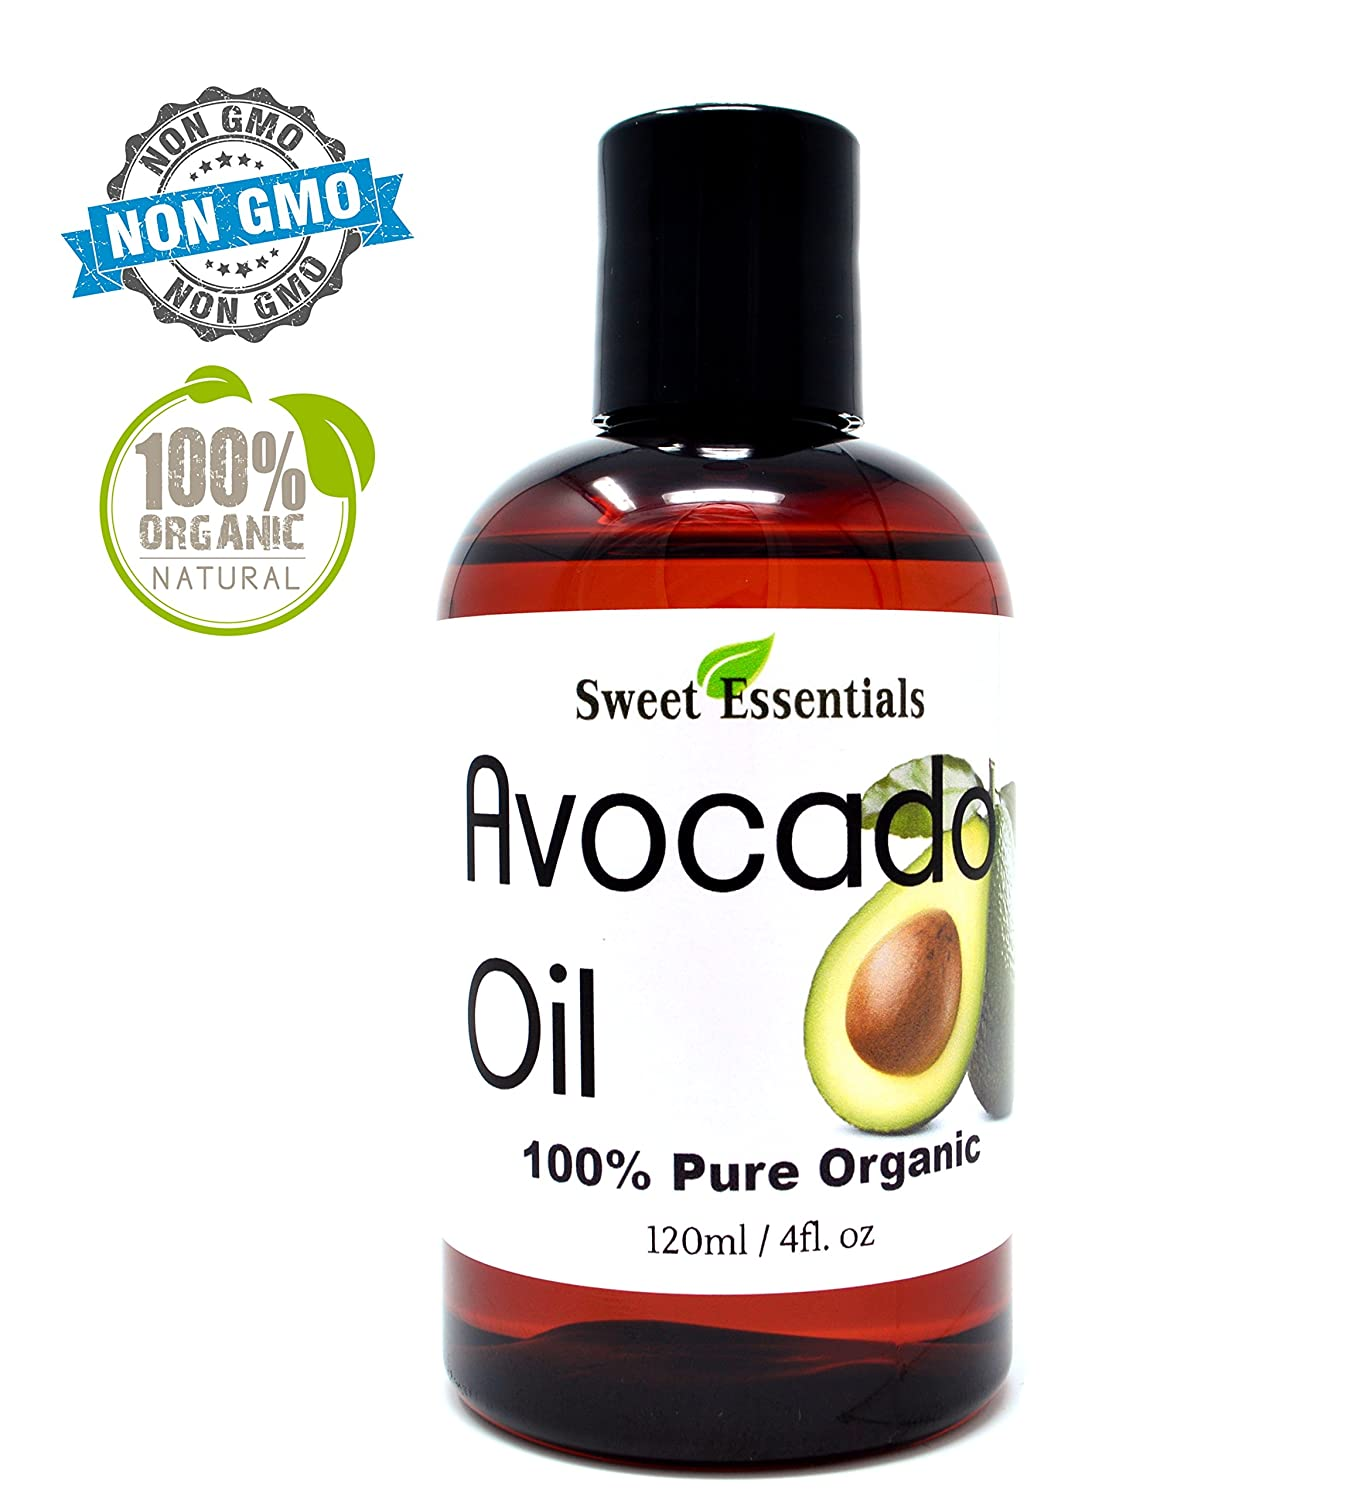 Avocado Oil - 4oz - Imported from Italy - Non-GMO/Golden in Color